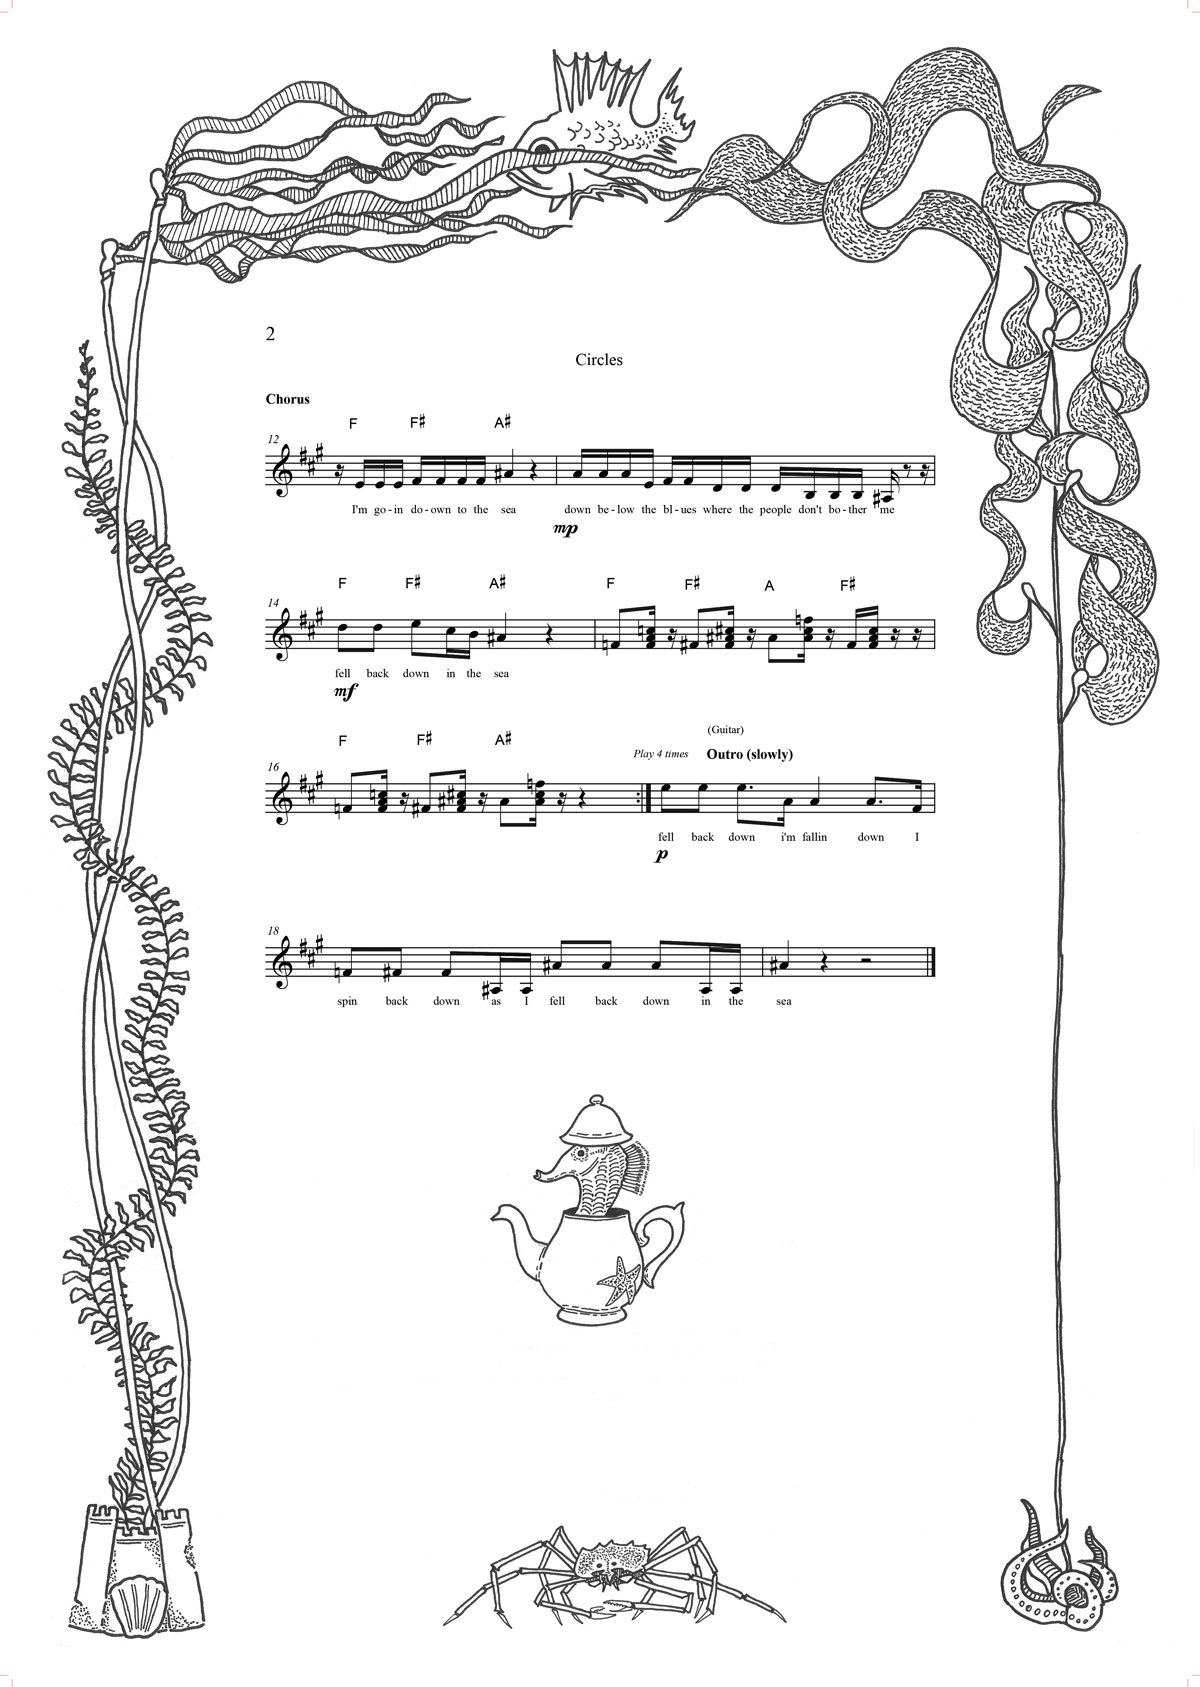 WB-music-portfolio-Circles-notation-pg2